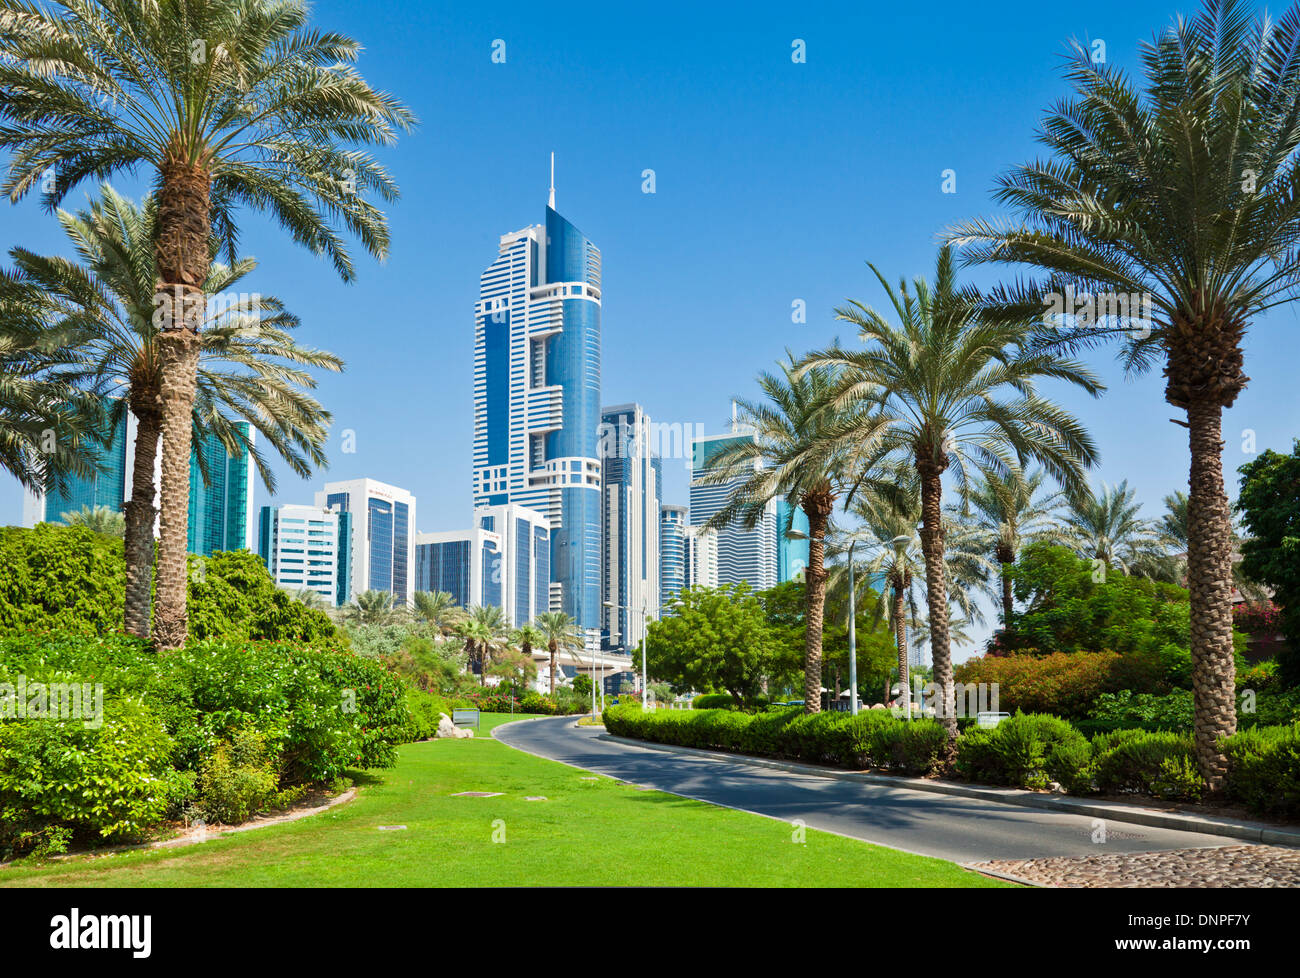 palm city middle eastern singles Average population age in the united states by zip code  city report: population: avg population age  palm city, florida (1) 23,762: 472.